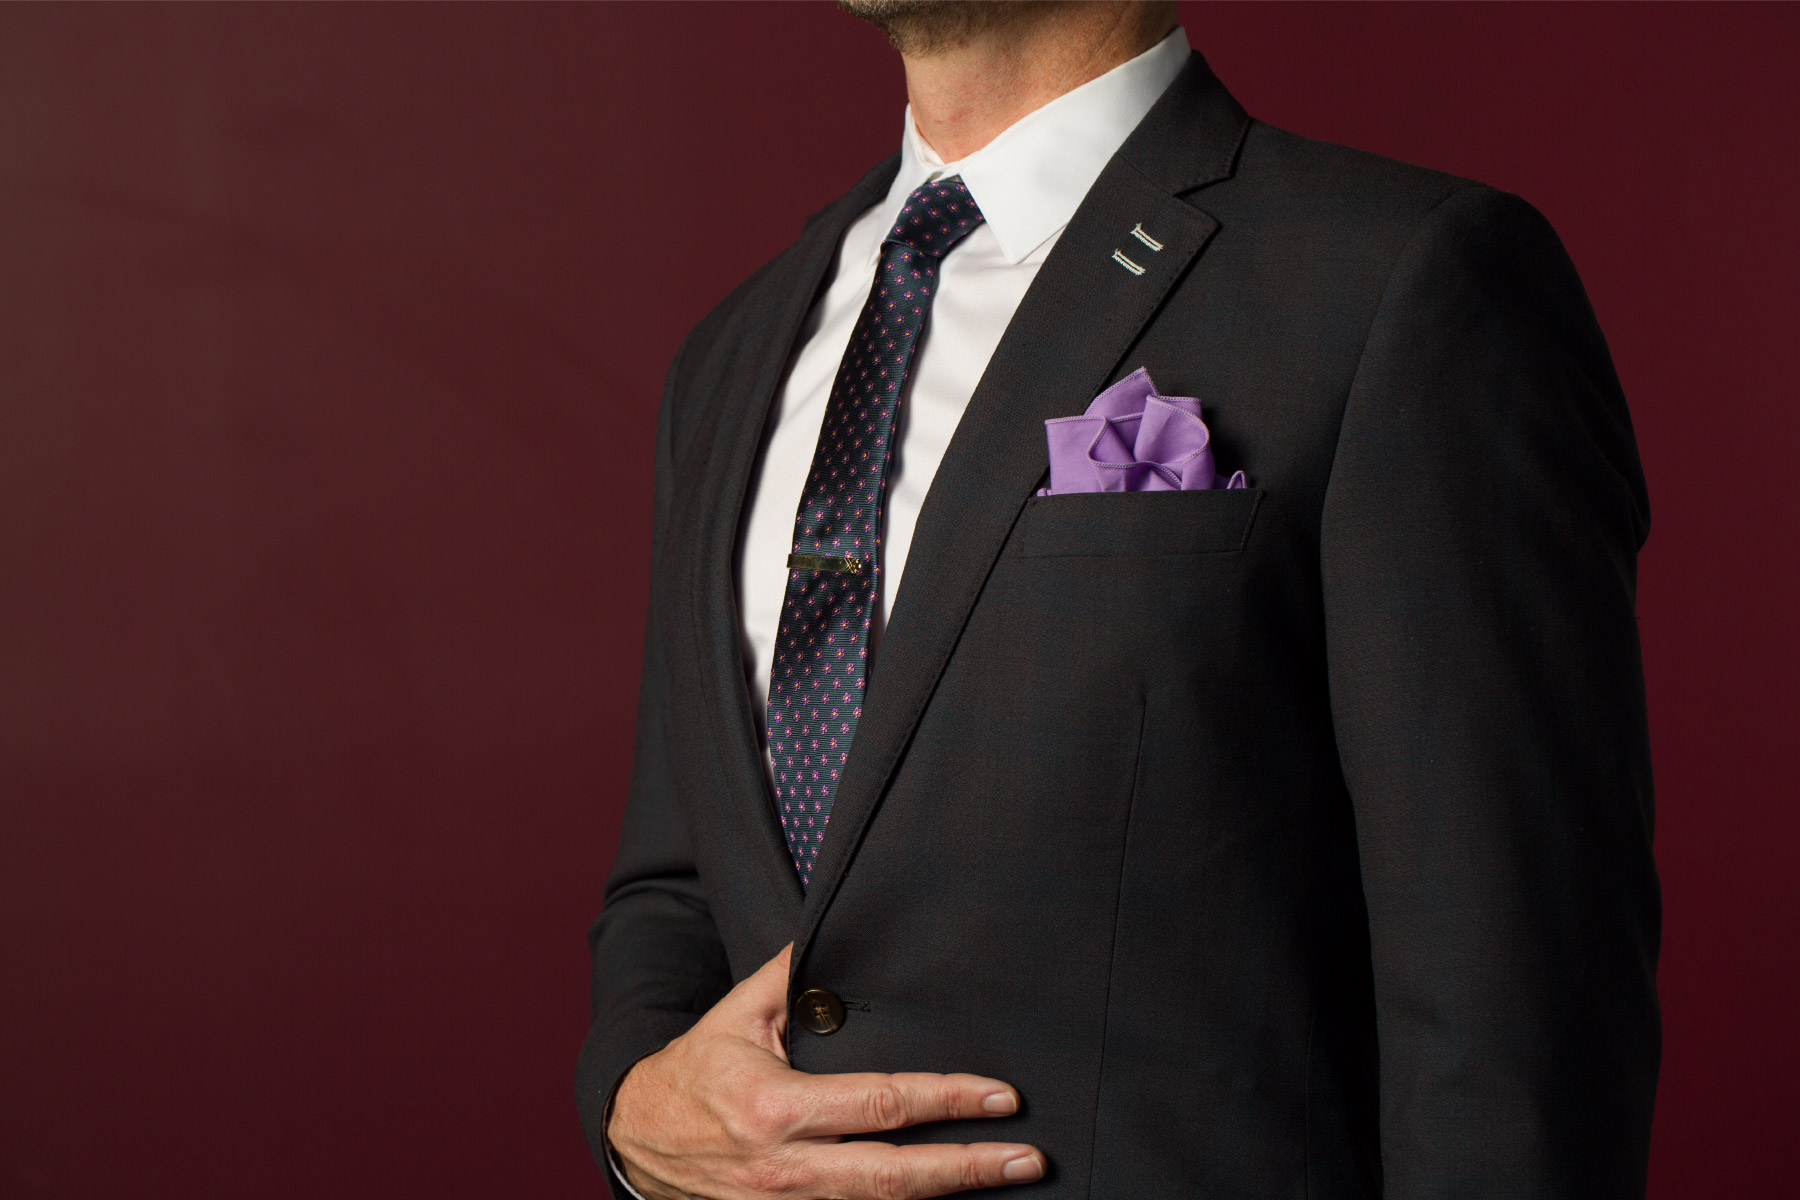 Client's custom made suit with lavender accessories